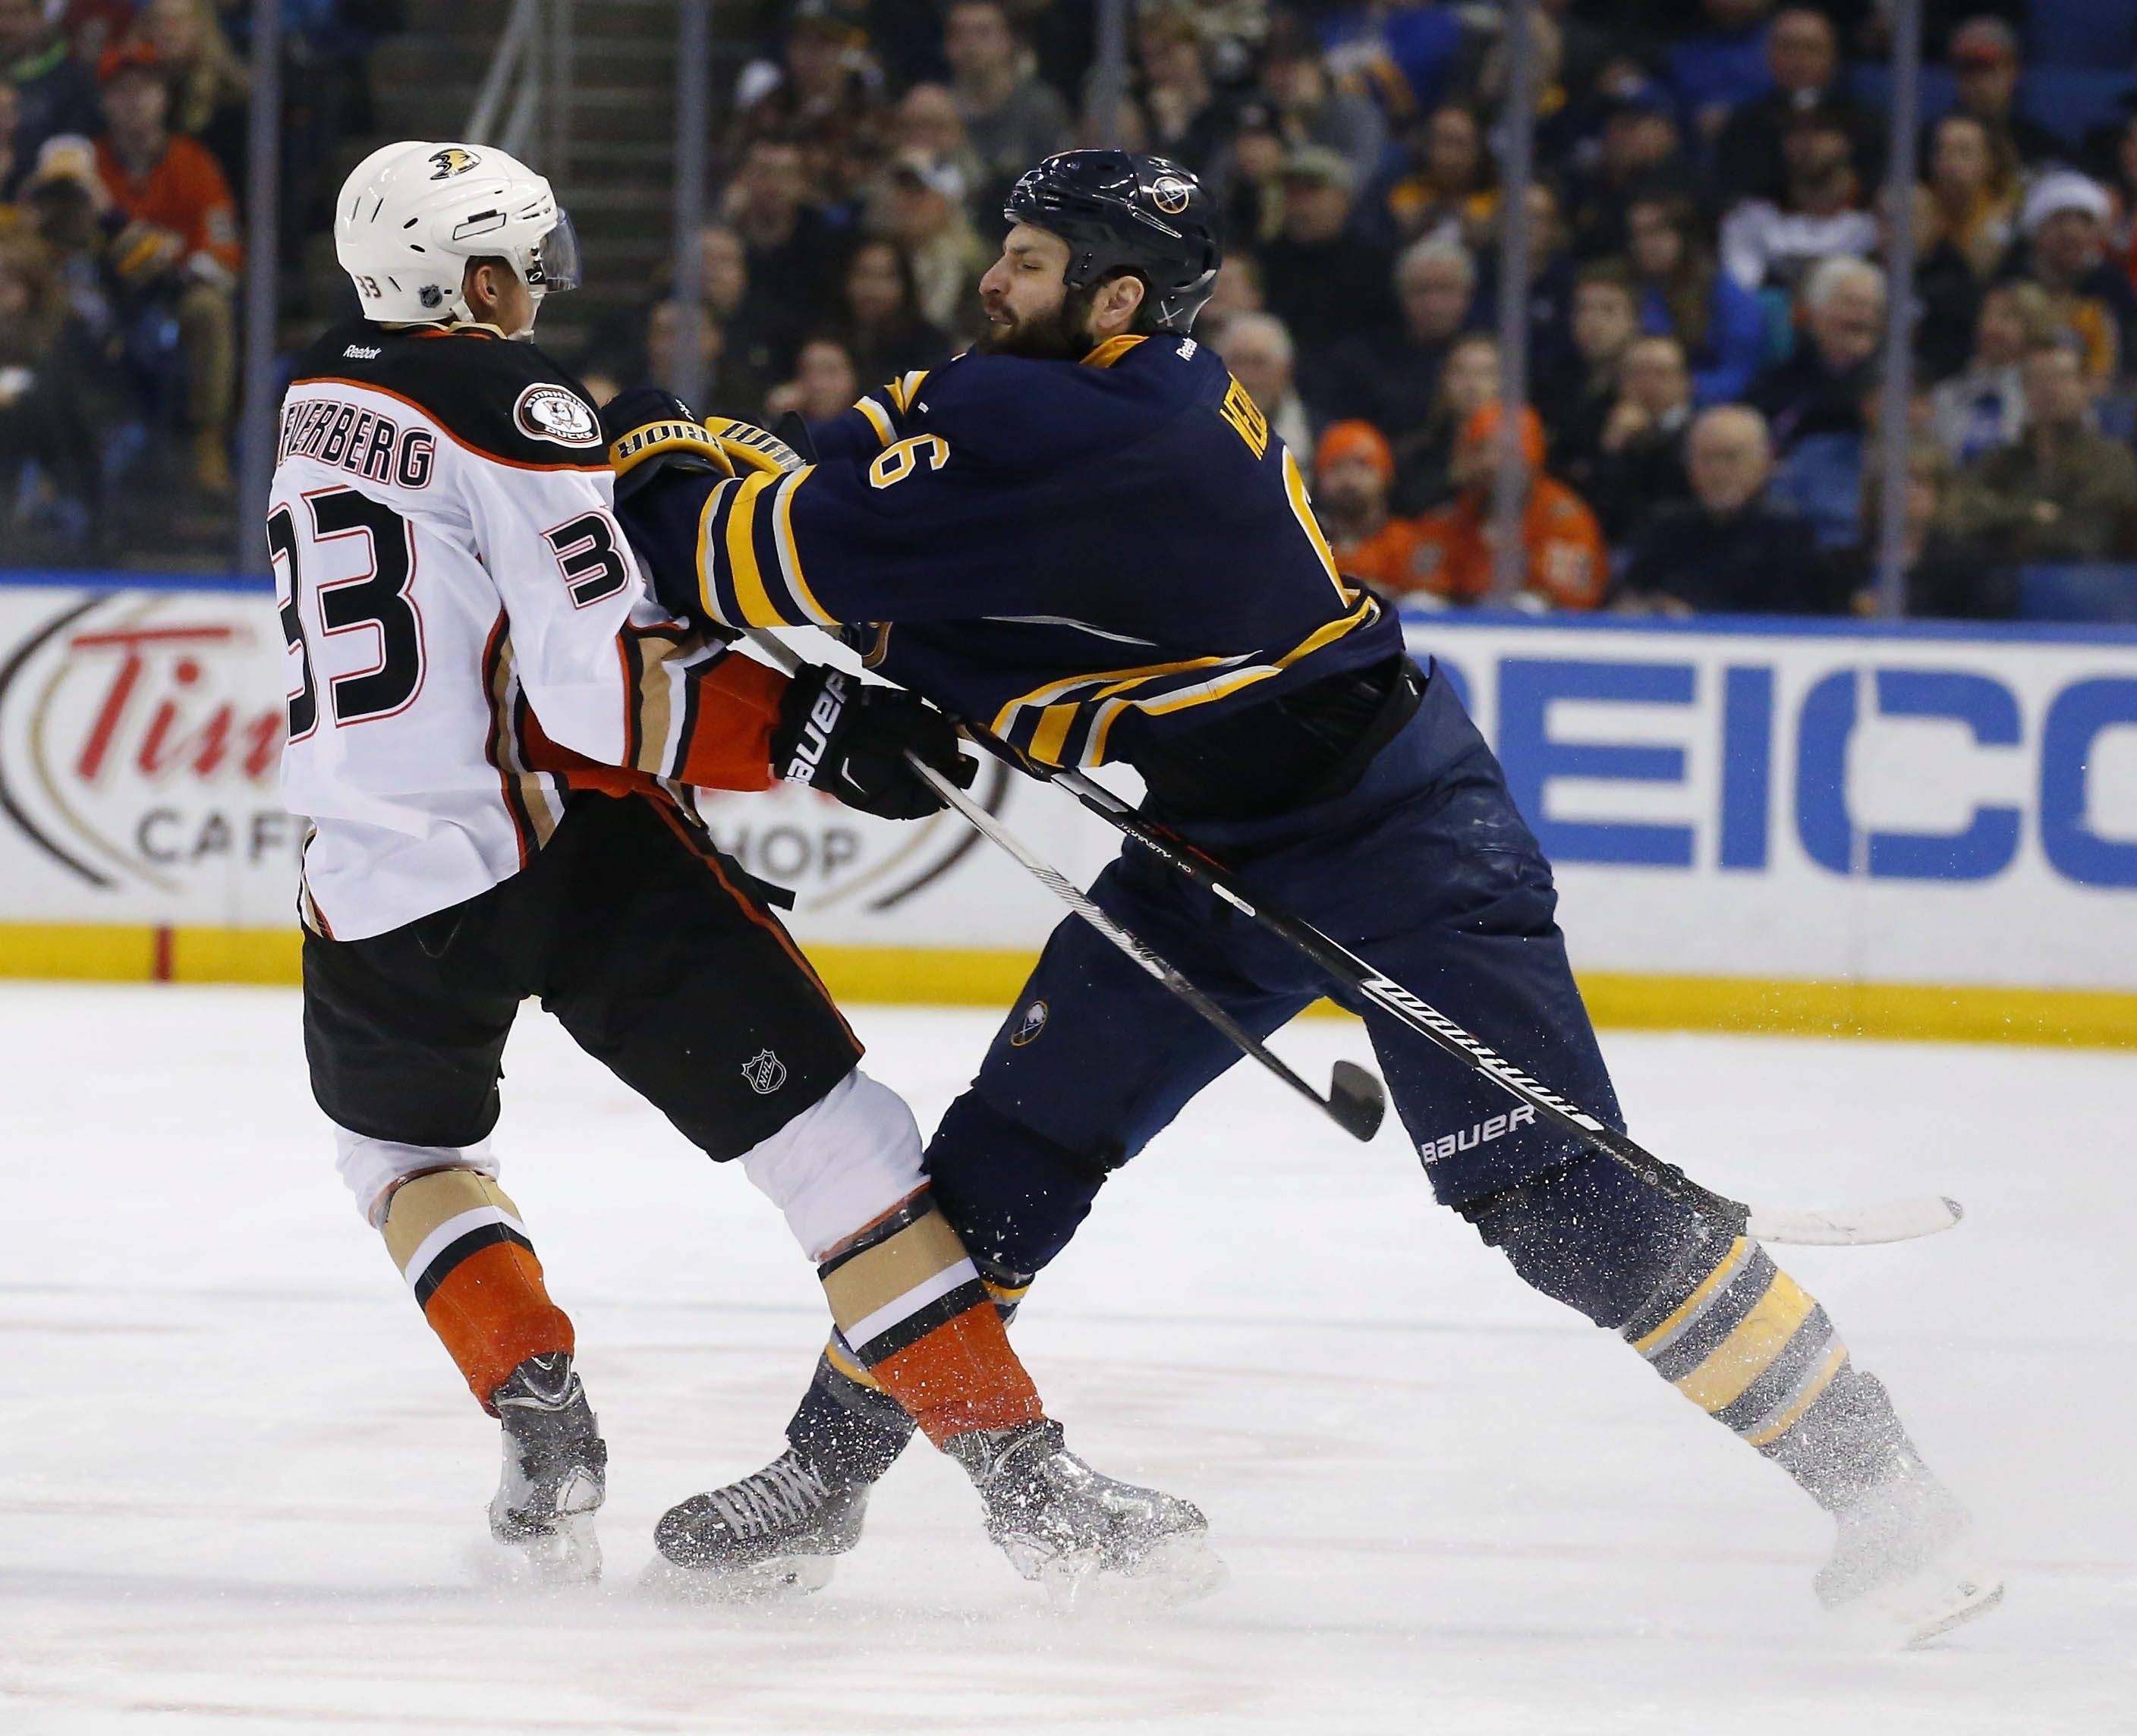 The Sabres' Mike Weber checks the Duck's Jakob Silfverberg in the first period at the First Niagara Center in BuffaloThursday, December 17, 2015.  (Mark Mulville/Buffalo News)